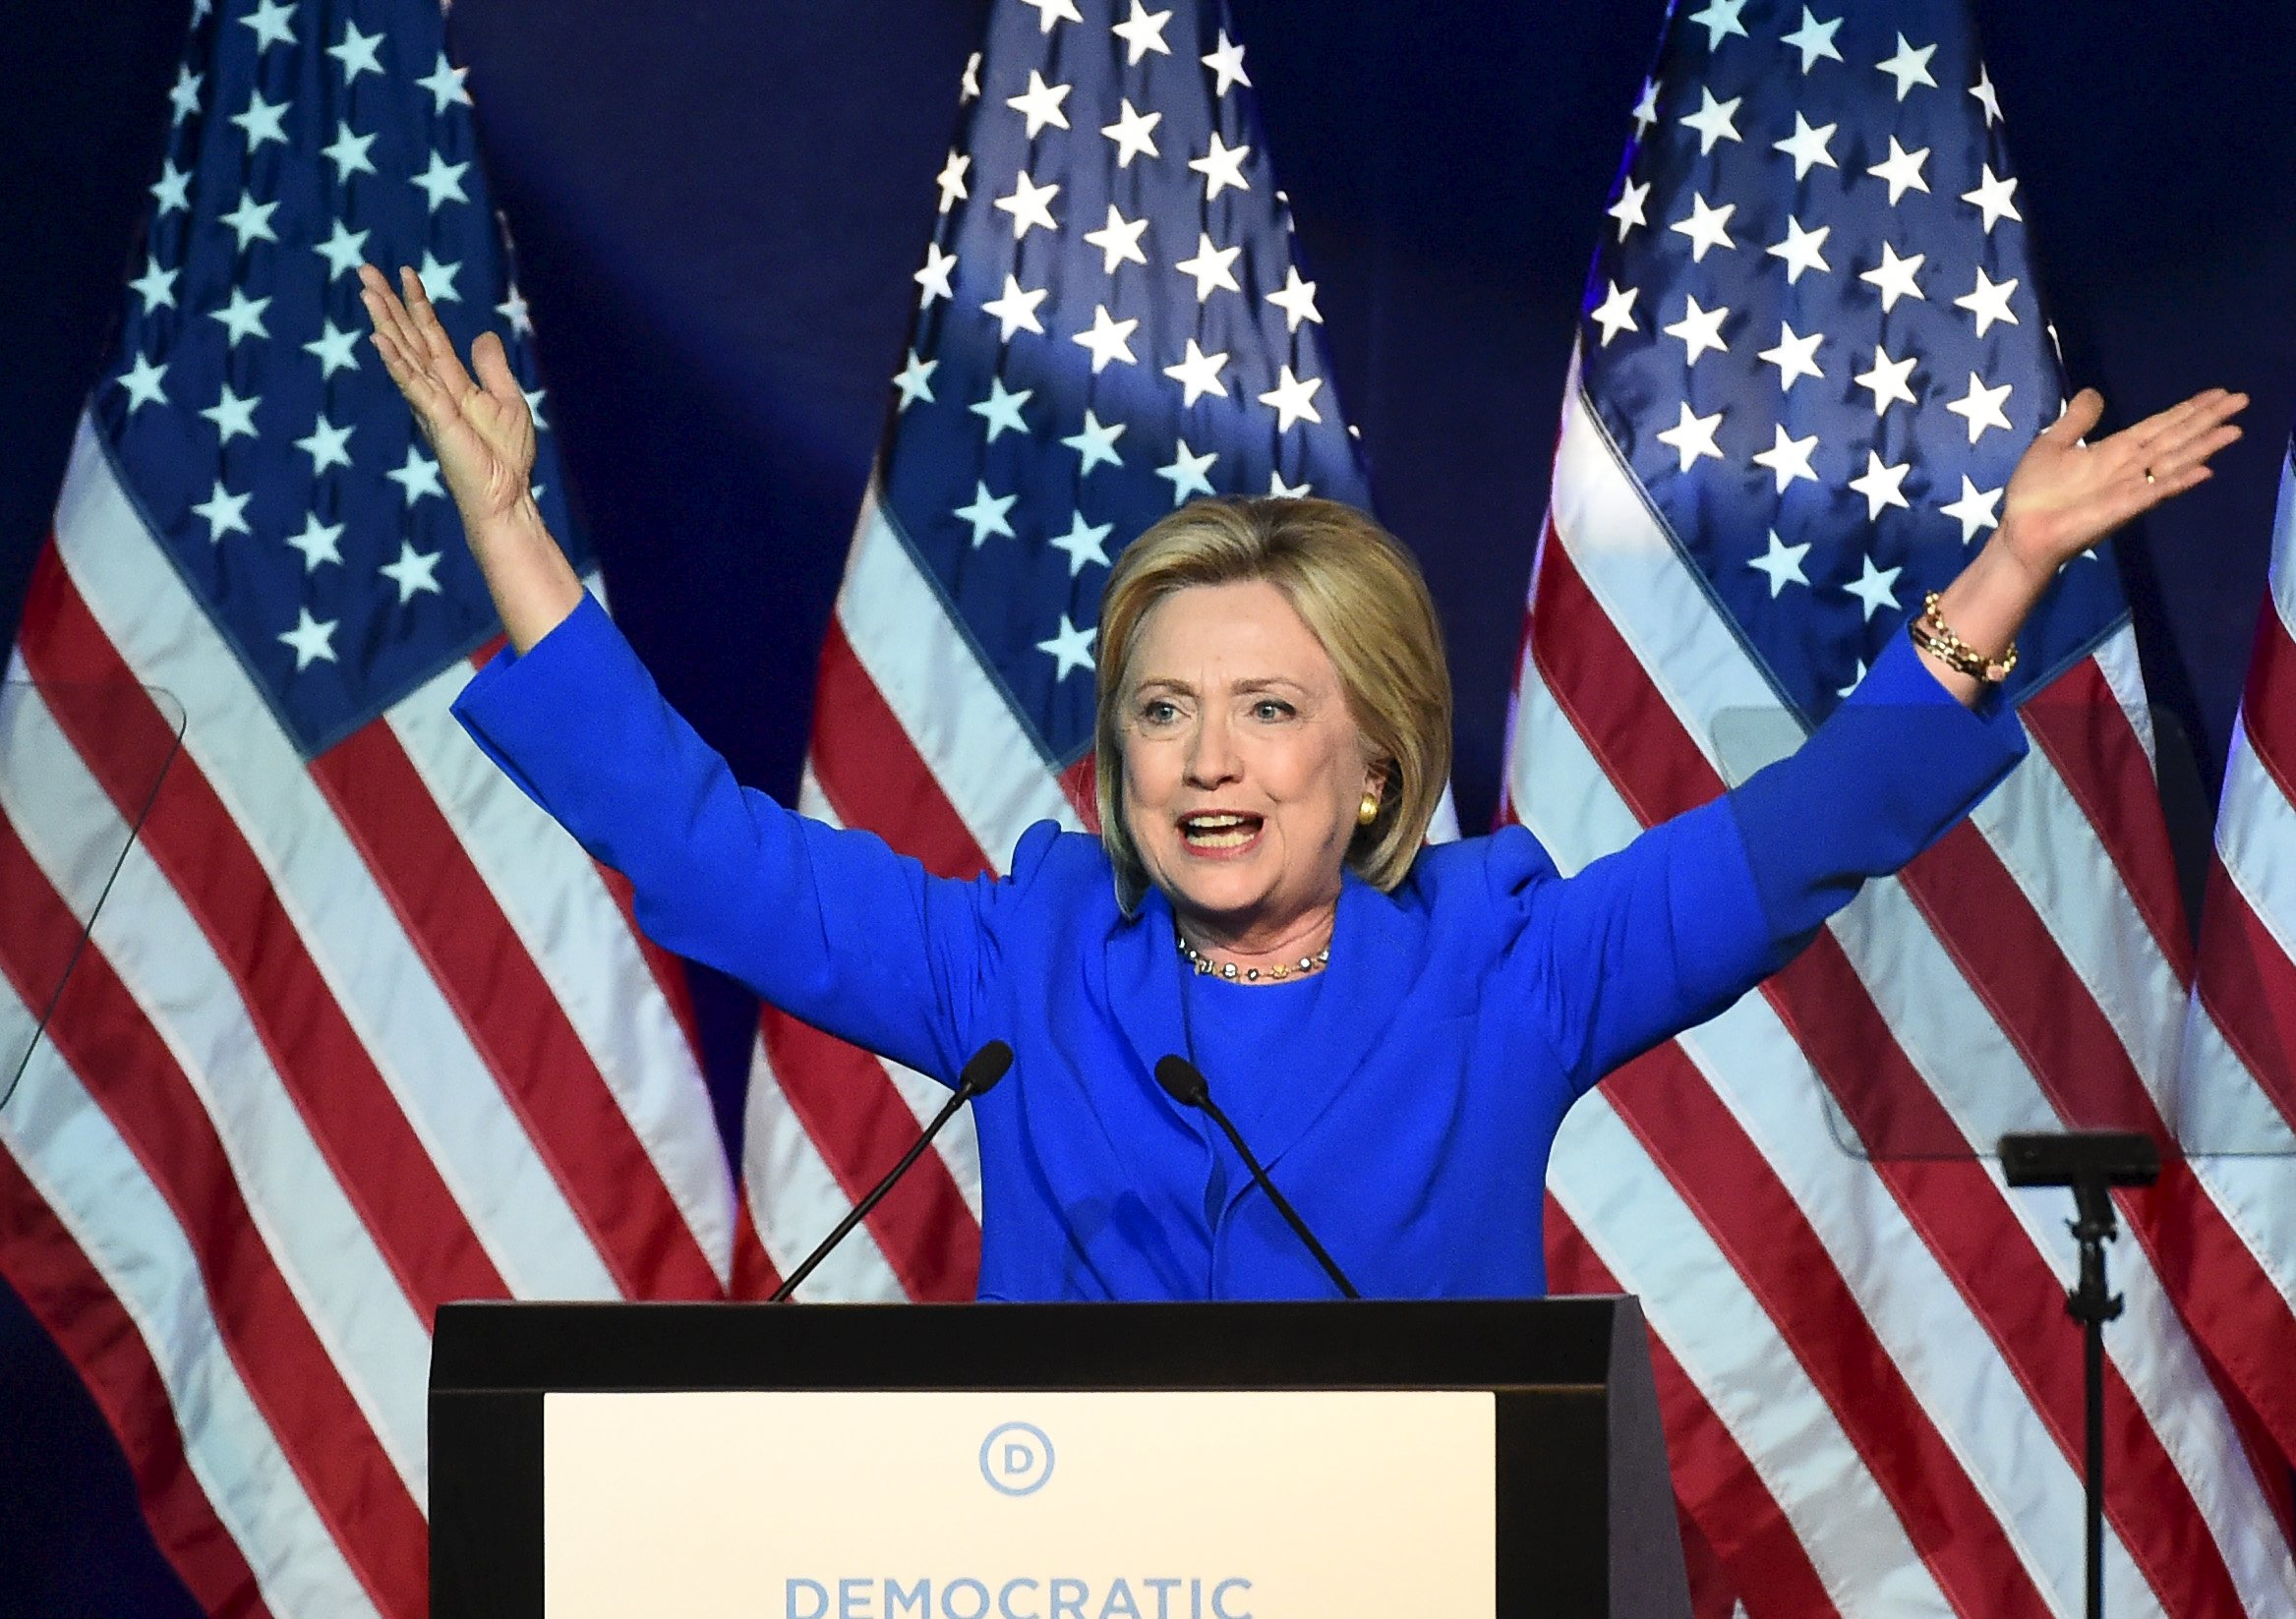 Gefilte fish - Election 2016: 8 of the quirkier Hillary ...